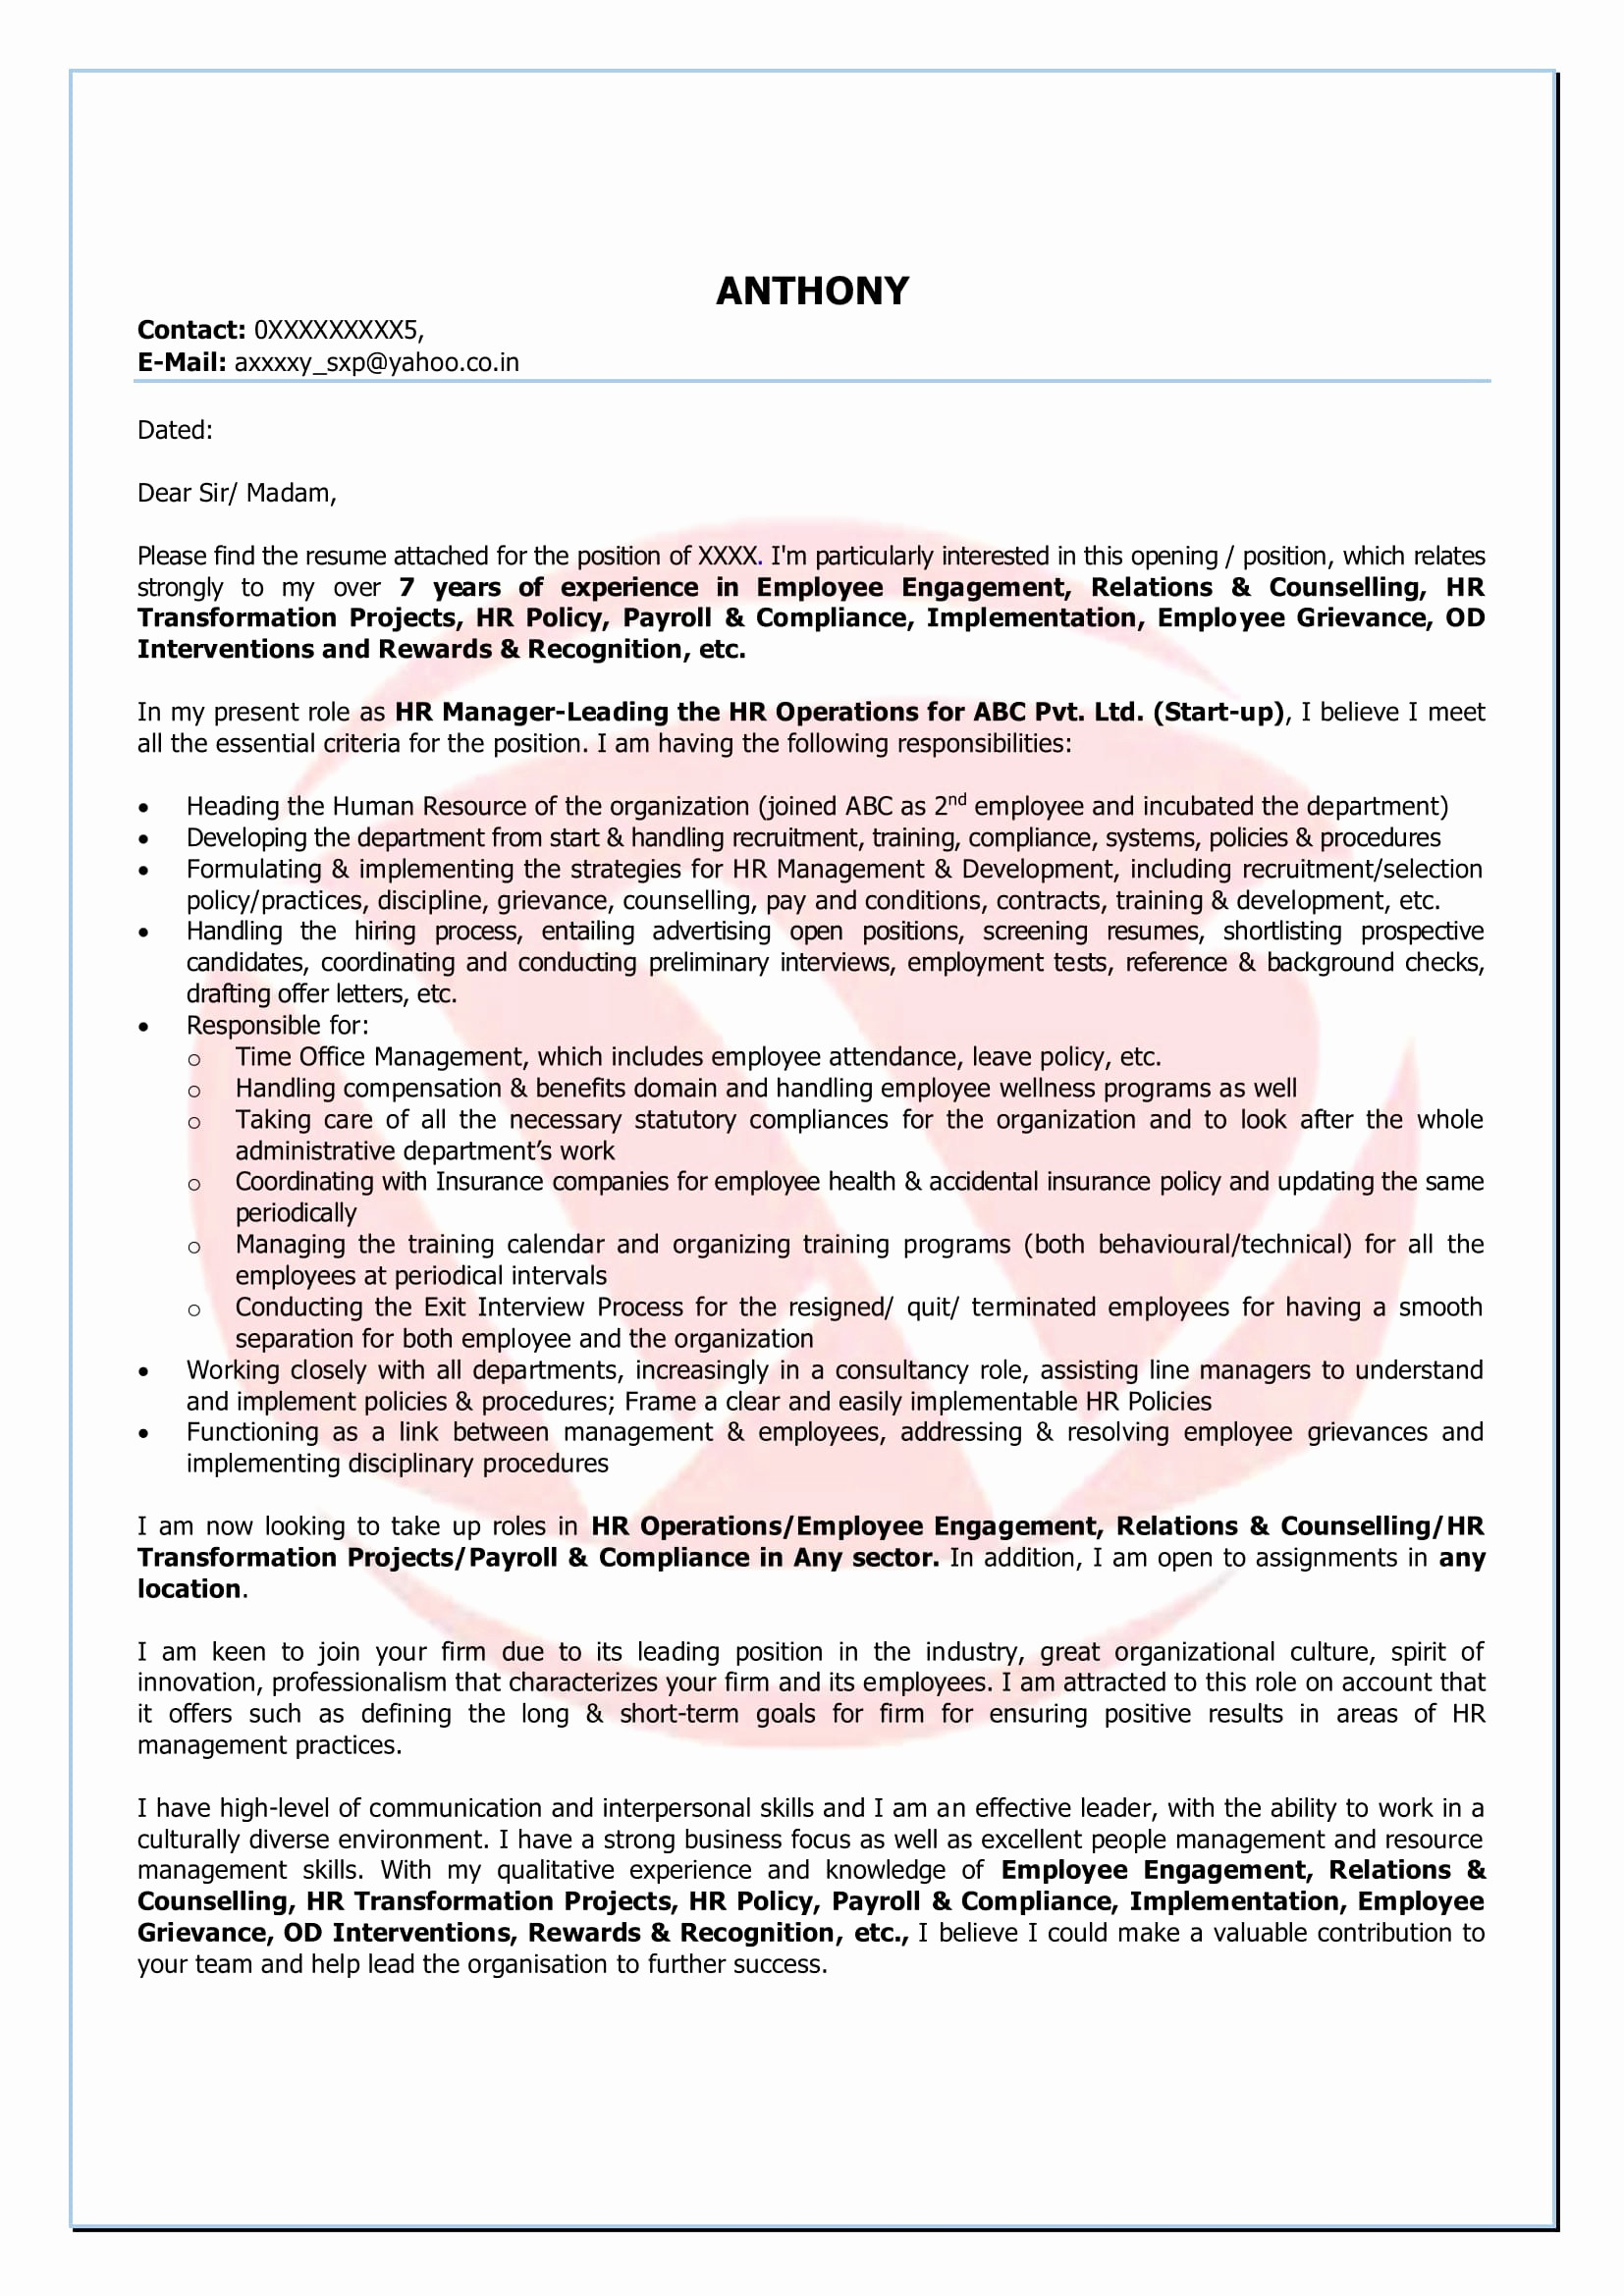 Confirmation Of Employment Letter Template - Free Cover Letter Templates Confirmation Job Letter